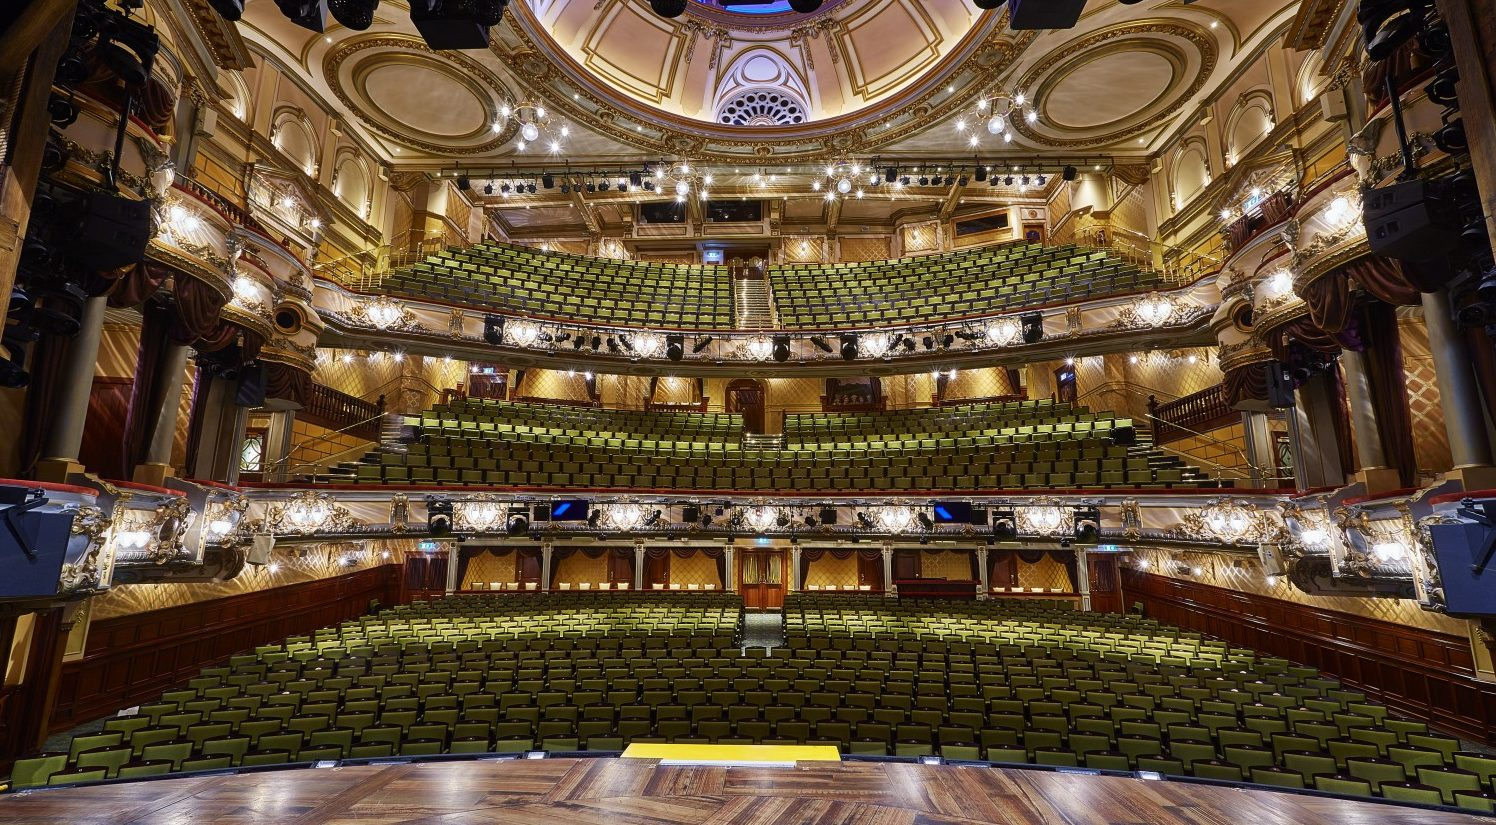 Victoria Palace Theatre continues to dazzle London's West End